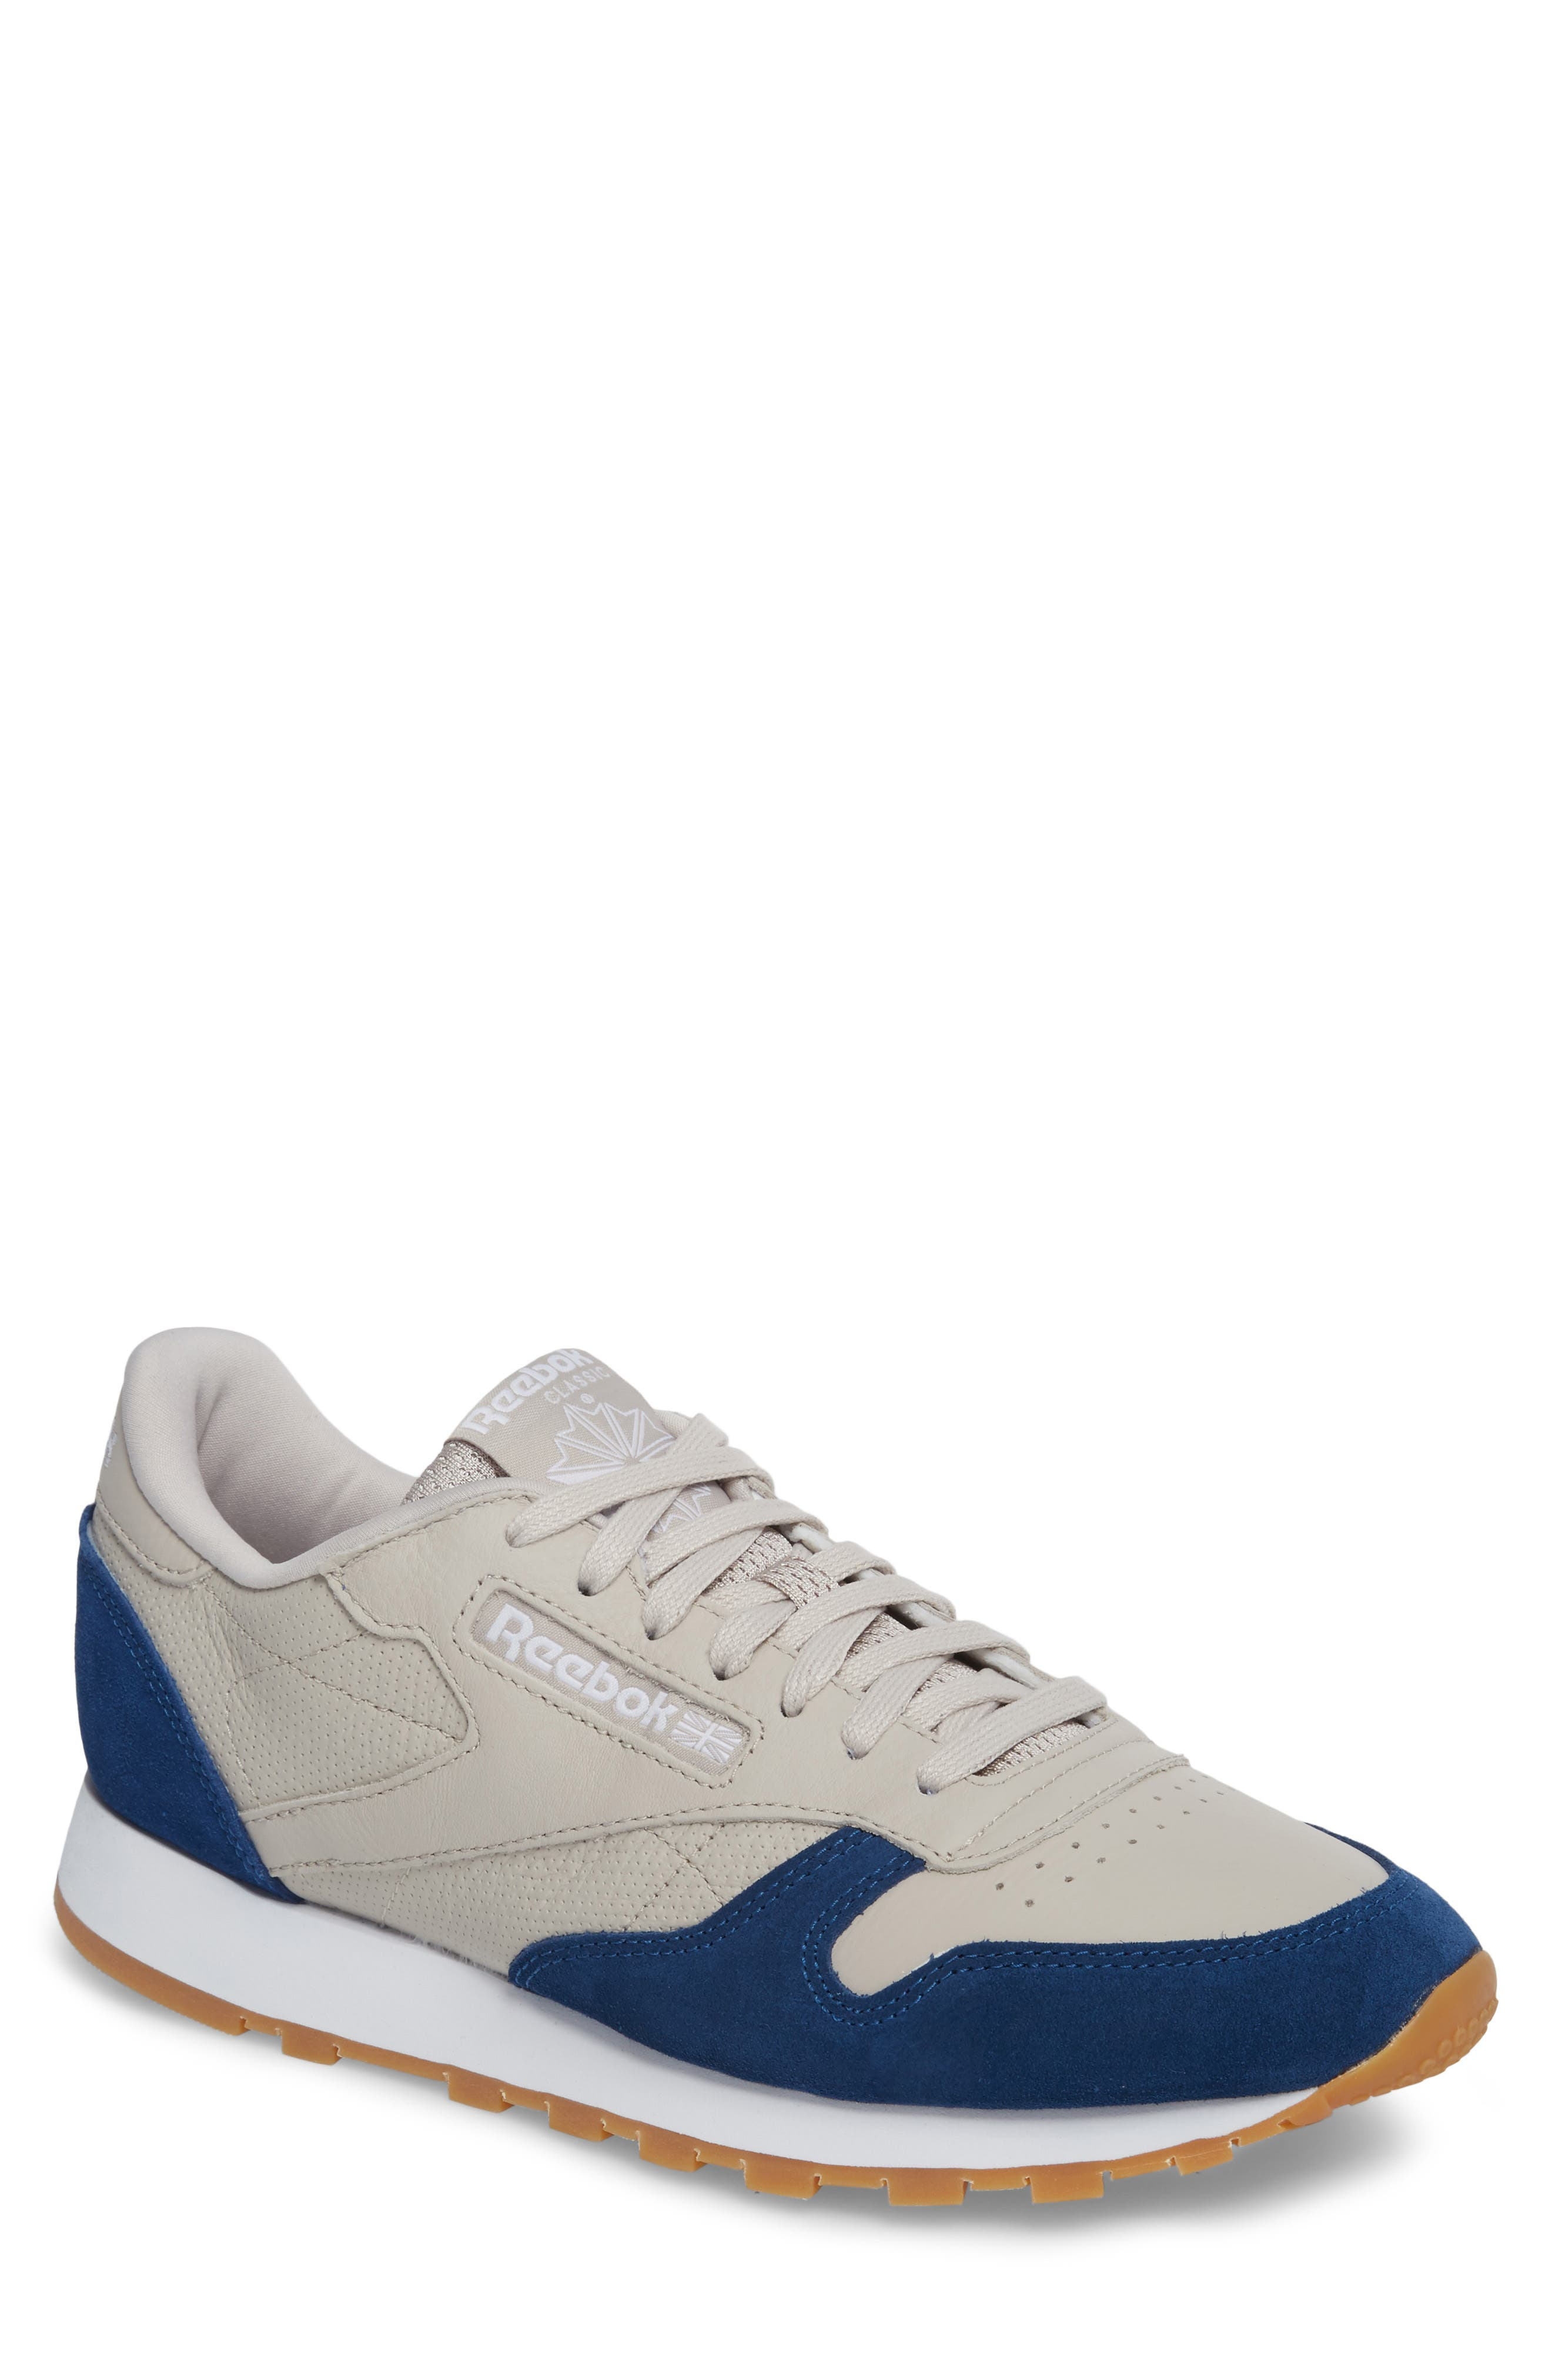 Classic Leather GI Sneaker,                             Main thumbnail 1, color,                             Sand Stone/ Washed Blue/ White